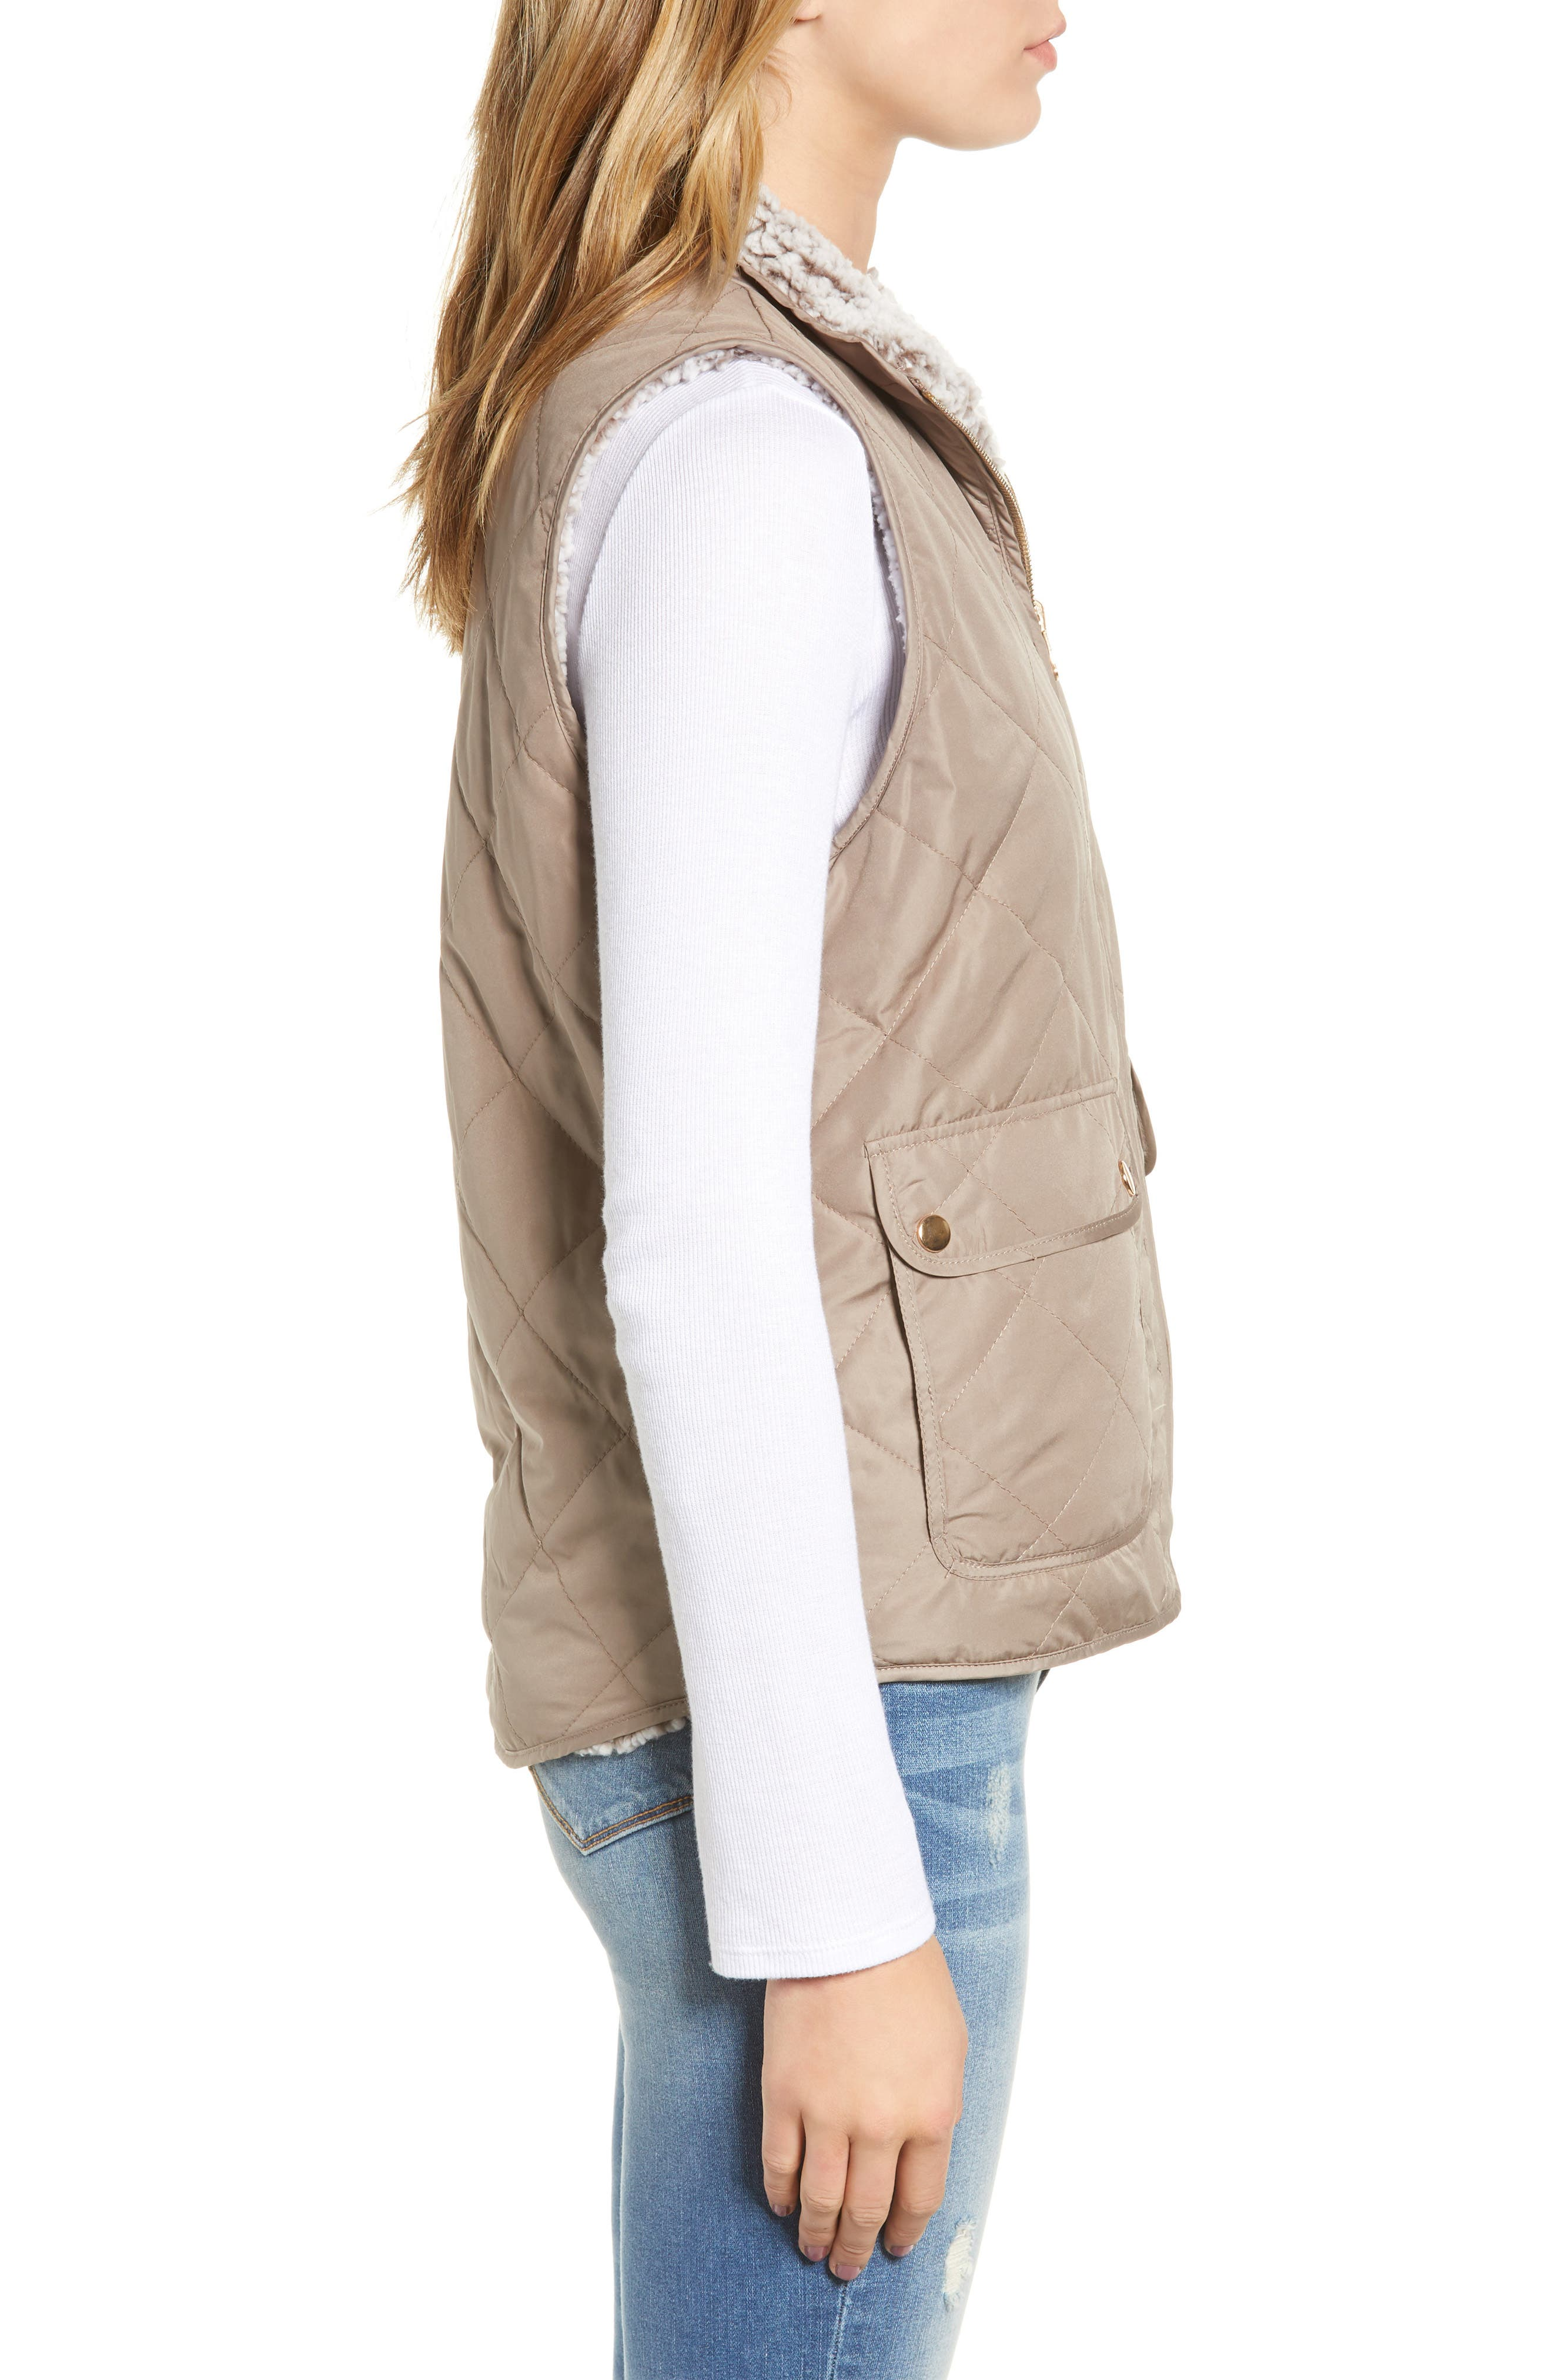 THREAD & SUPPLY, Reversible Fleece Lined Quilted Vest, Alternate thumbnail 5, color, MUSHROOM